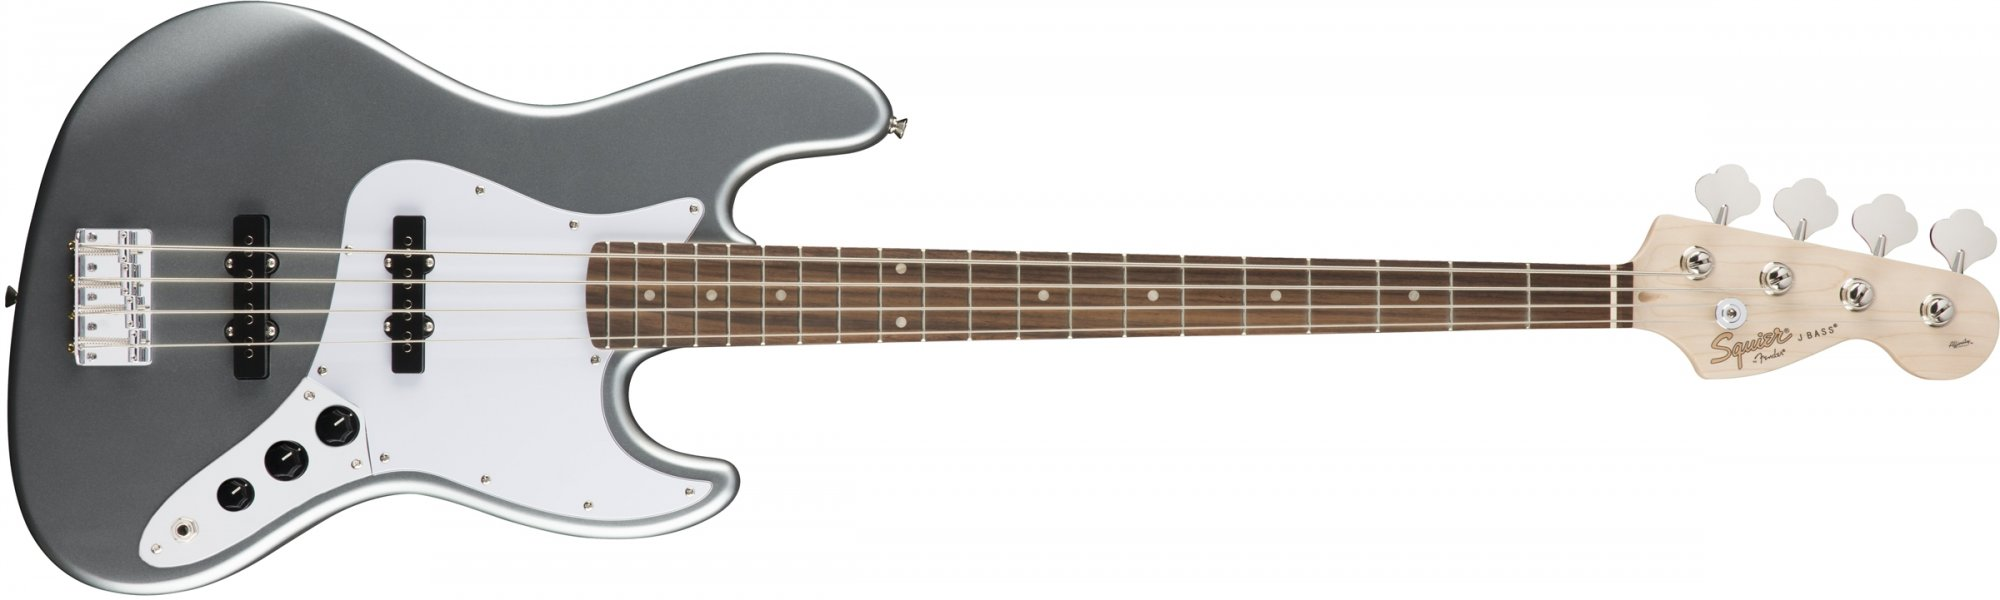 Fender Squier Affinity Jazz Bass Laurel Slick Silver